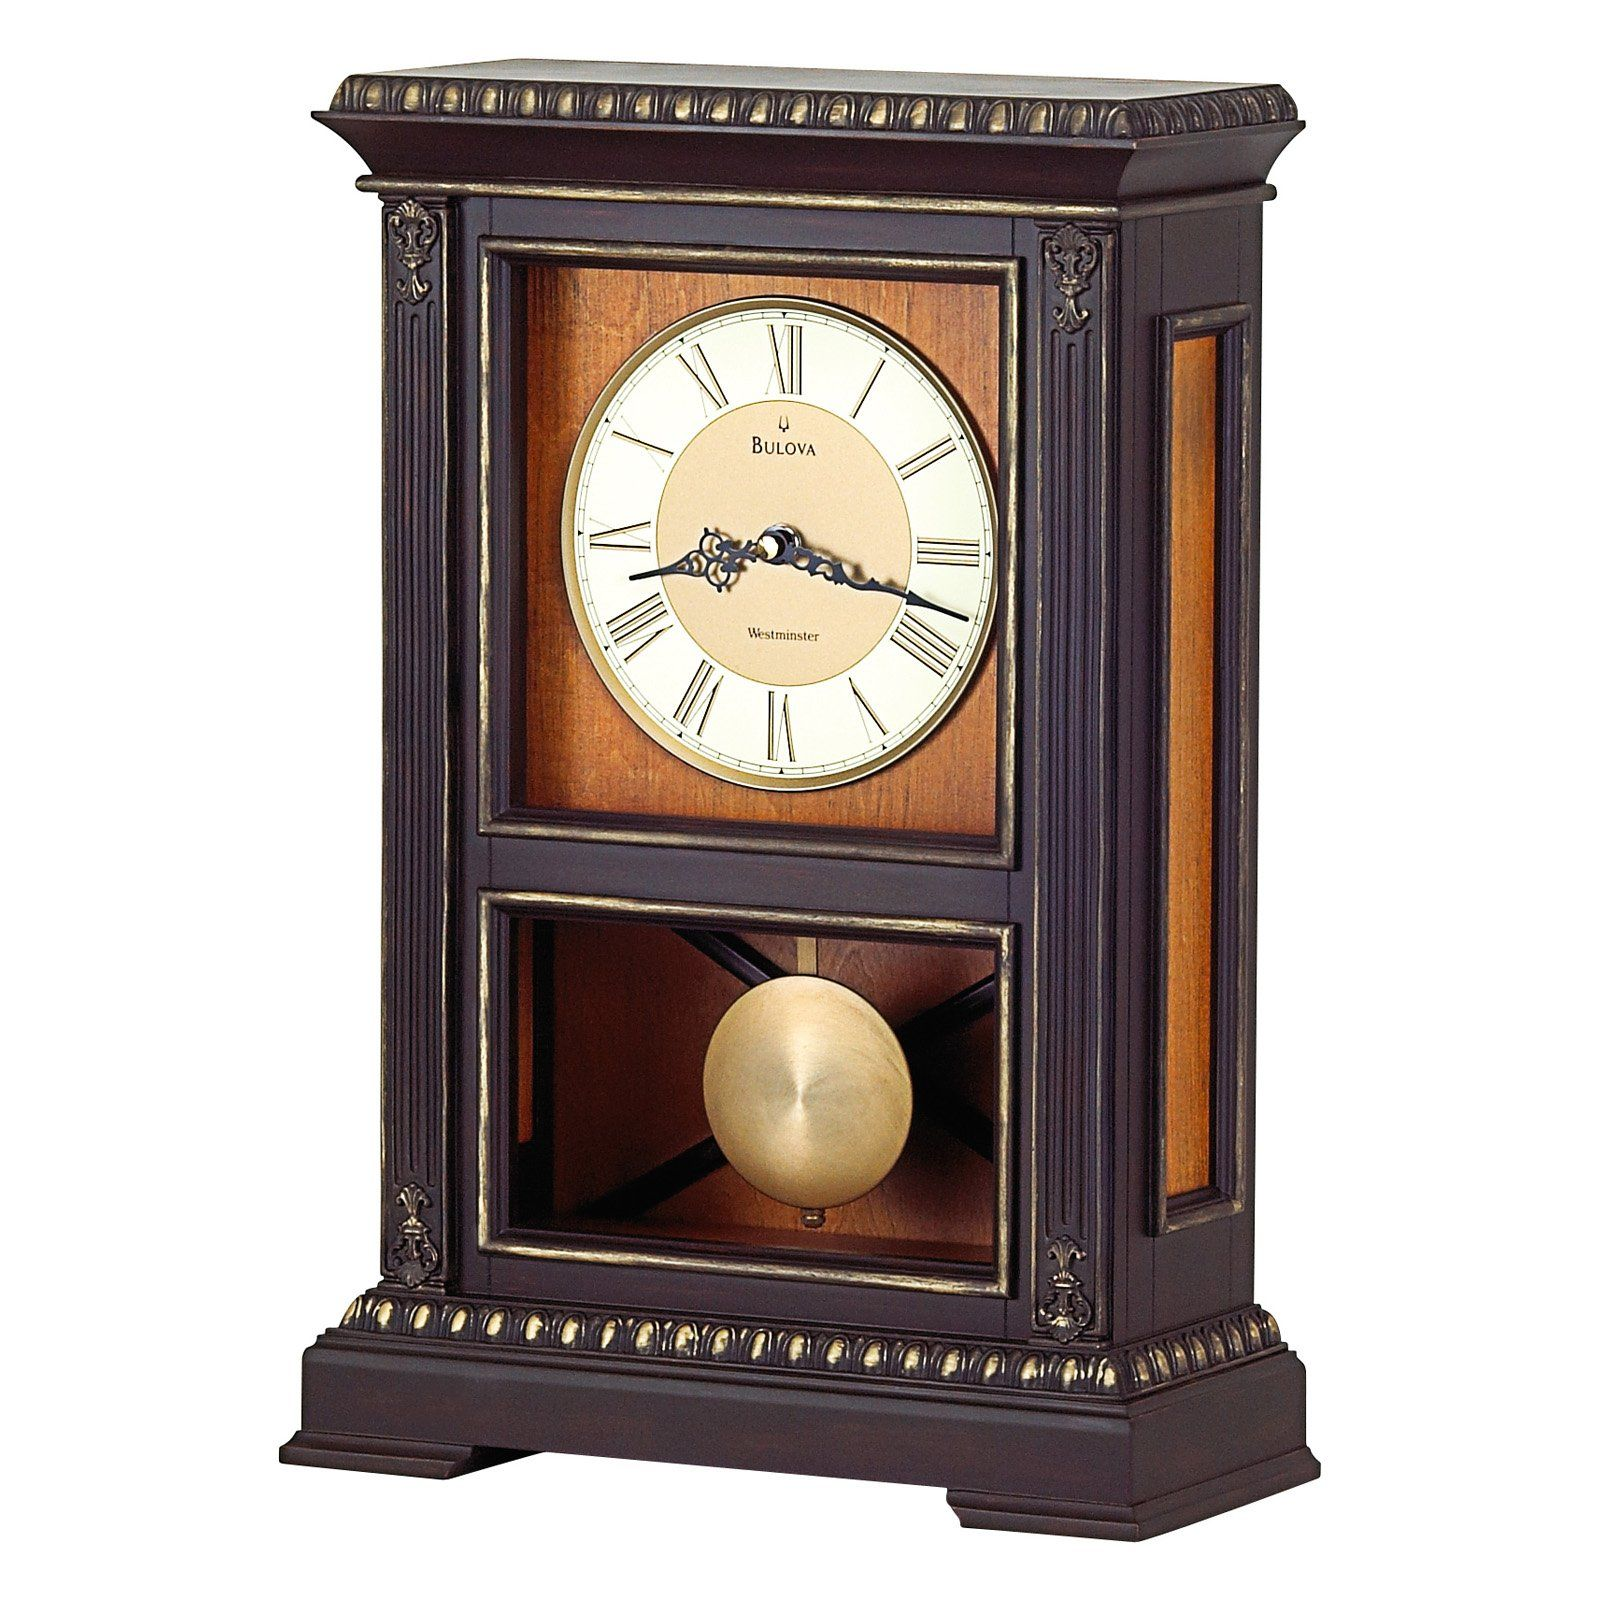 Have To Have It Bulova Whitmore Mantel Clock 149 99 Wall Clock Clock Clock Decor #standing #clocks #for #living #room